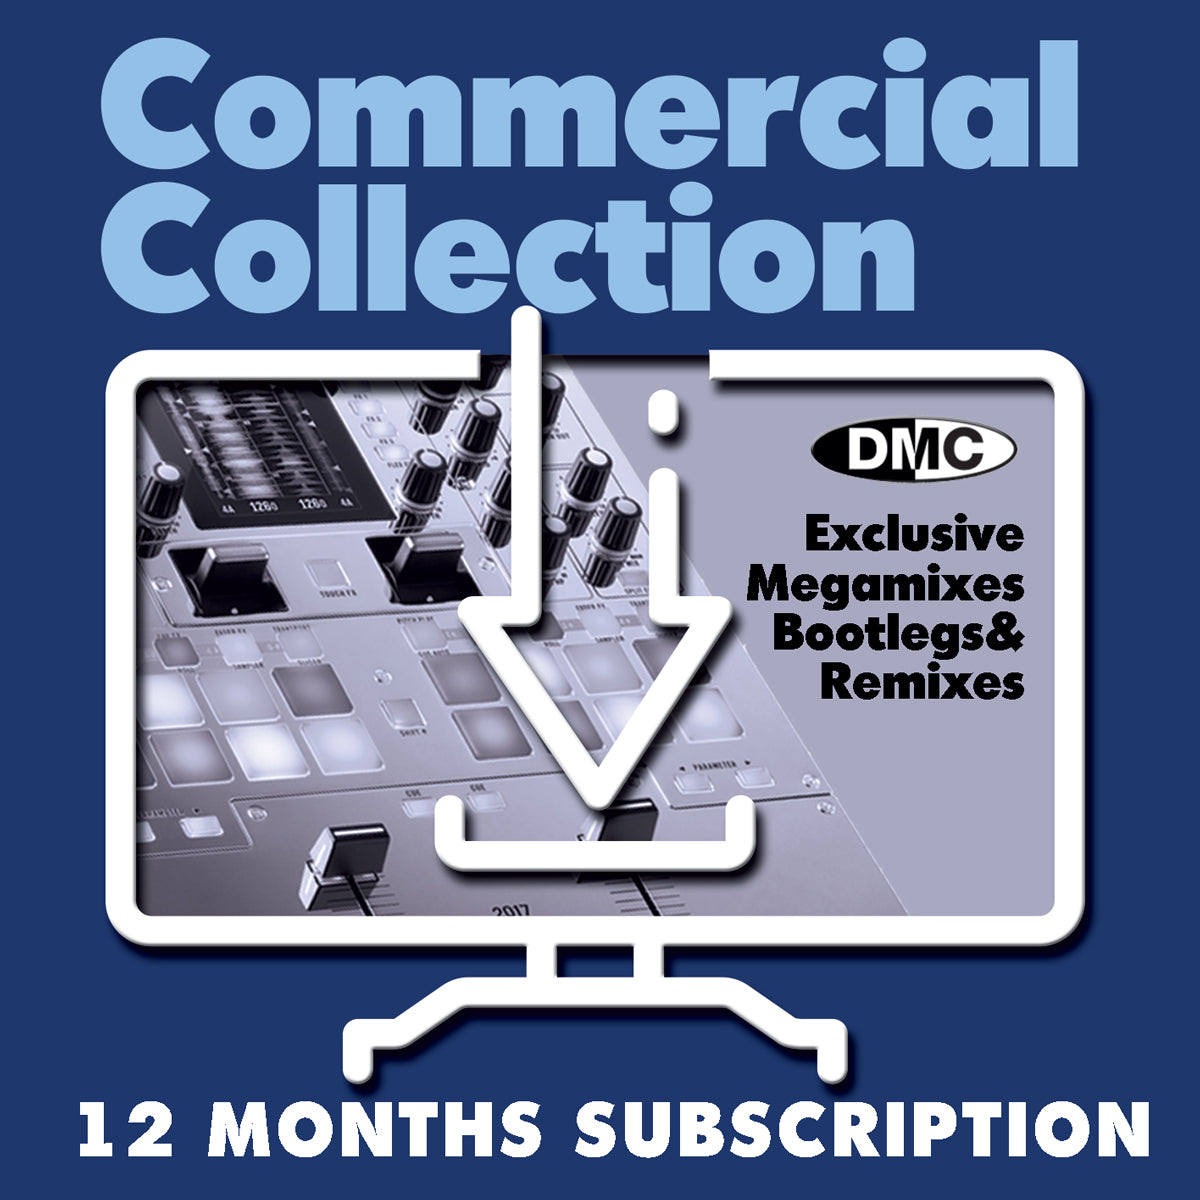 Check Out DOWNLOAD ONLY - DMC COMMERCIAL COLLECTION - 12 MONTH'S SUBSCRIPTION On The DMC Store